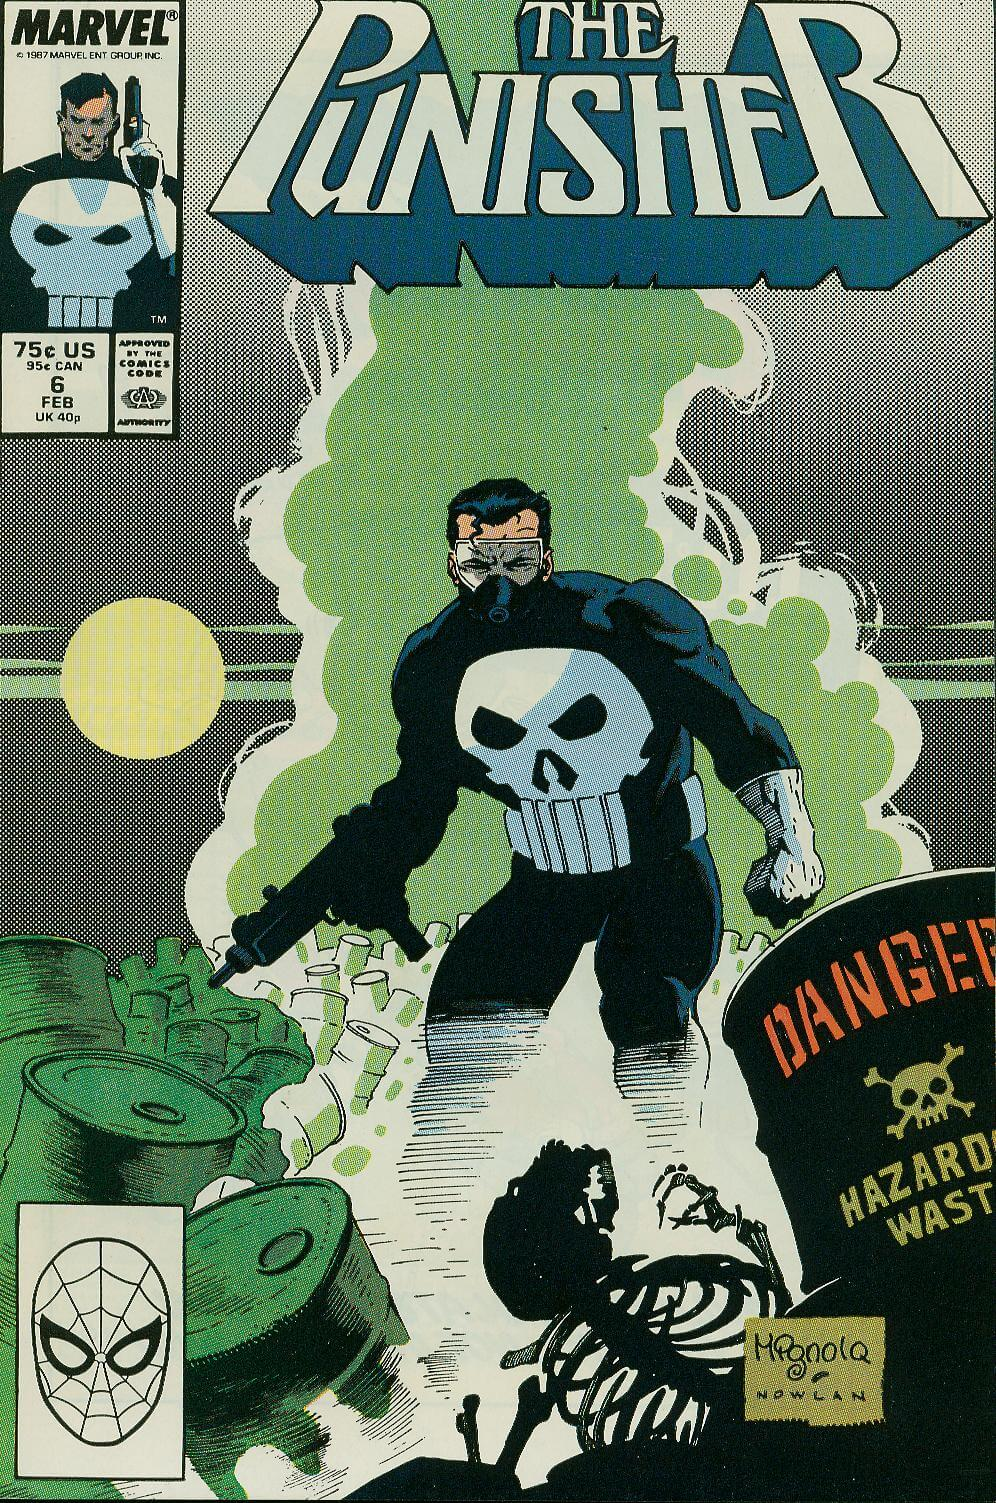 The Punisher Vol 2 #6